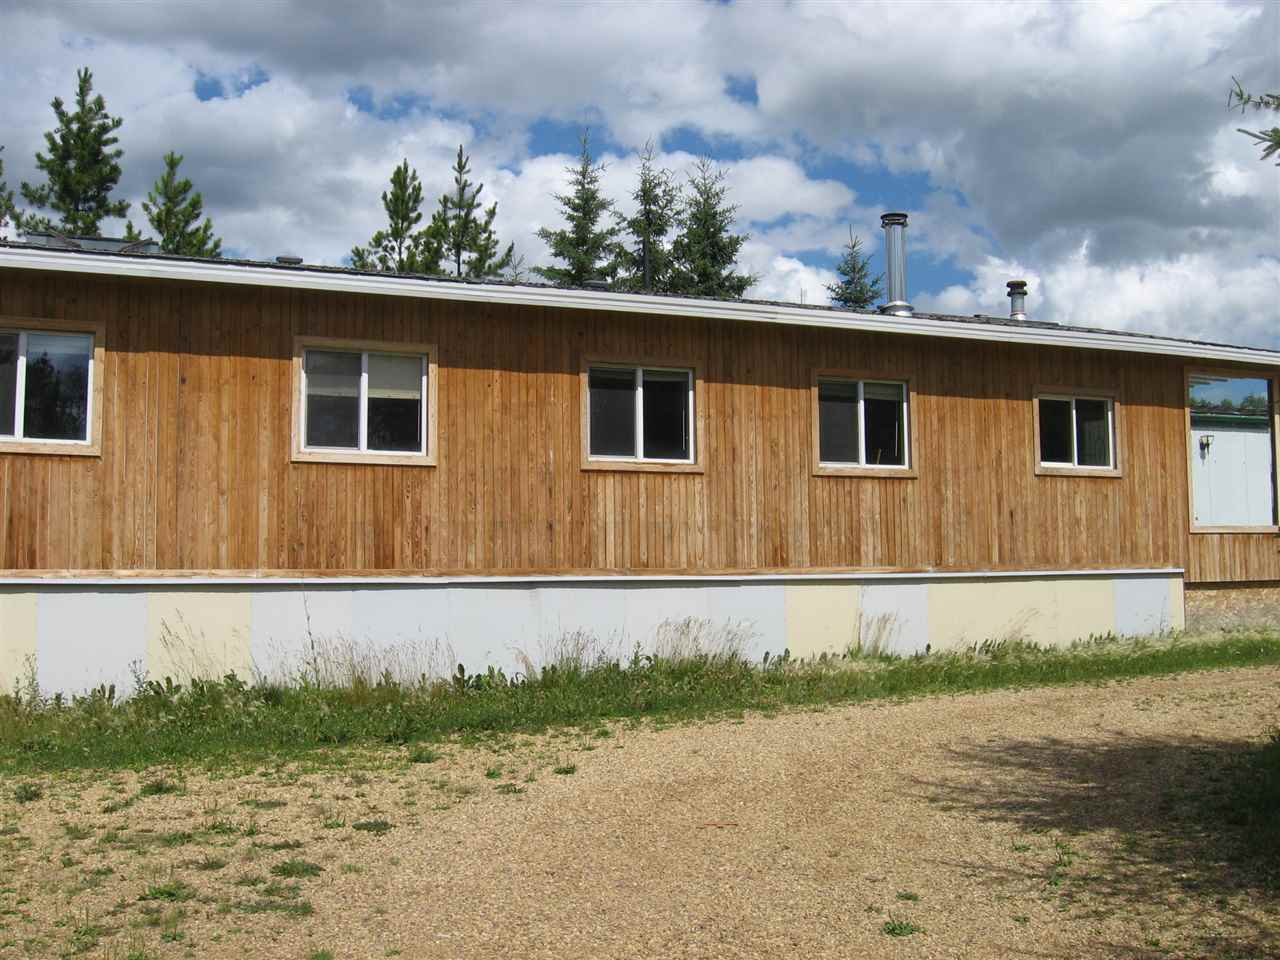 Affordable Country Living, located in Beaver Creek Estates, 1982 mobile home with an addition with wood burning fireplace. other out buildings including older mobile home sheds must be seen to appreciate the possibilities of what can be done on this property.